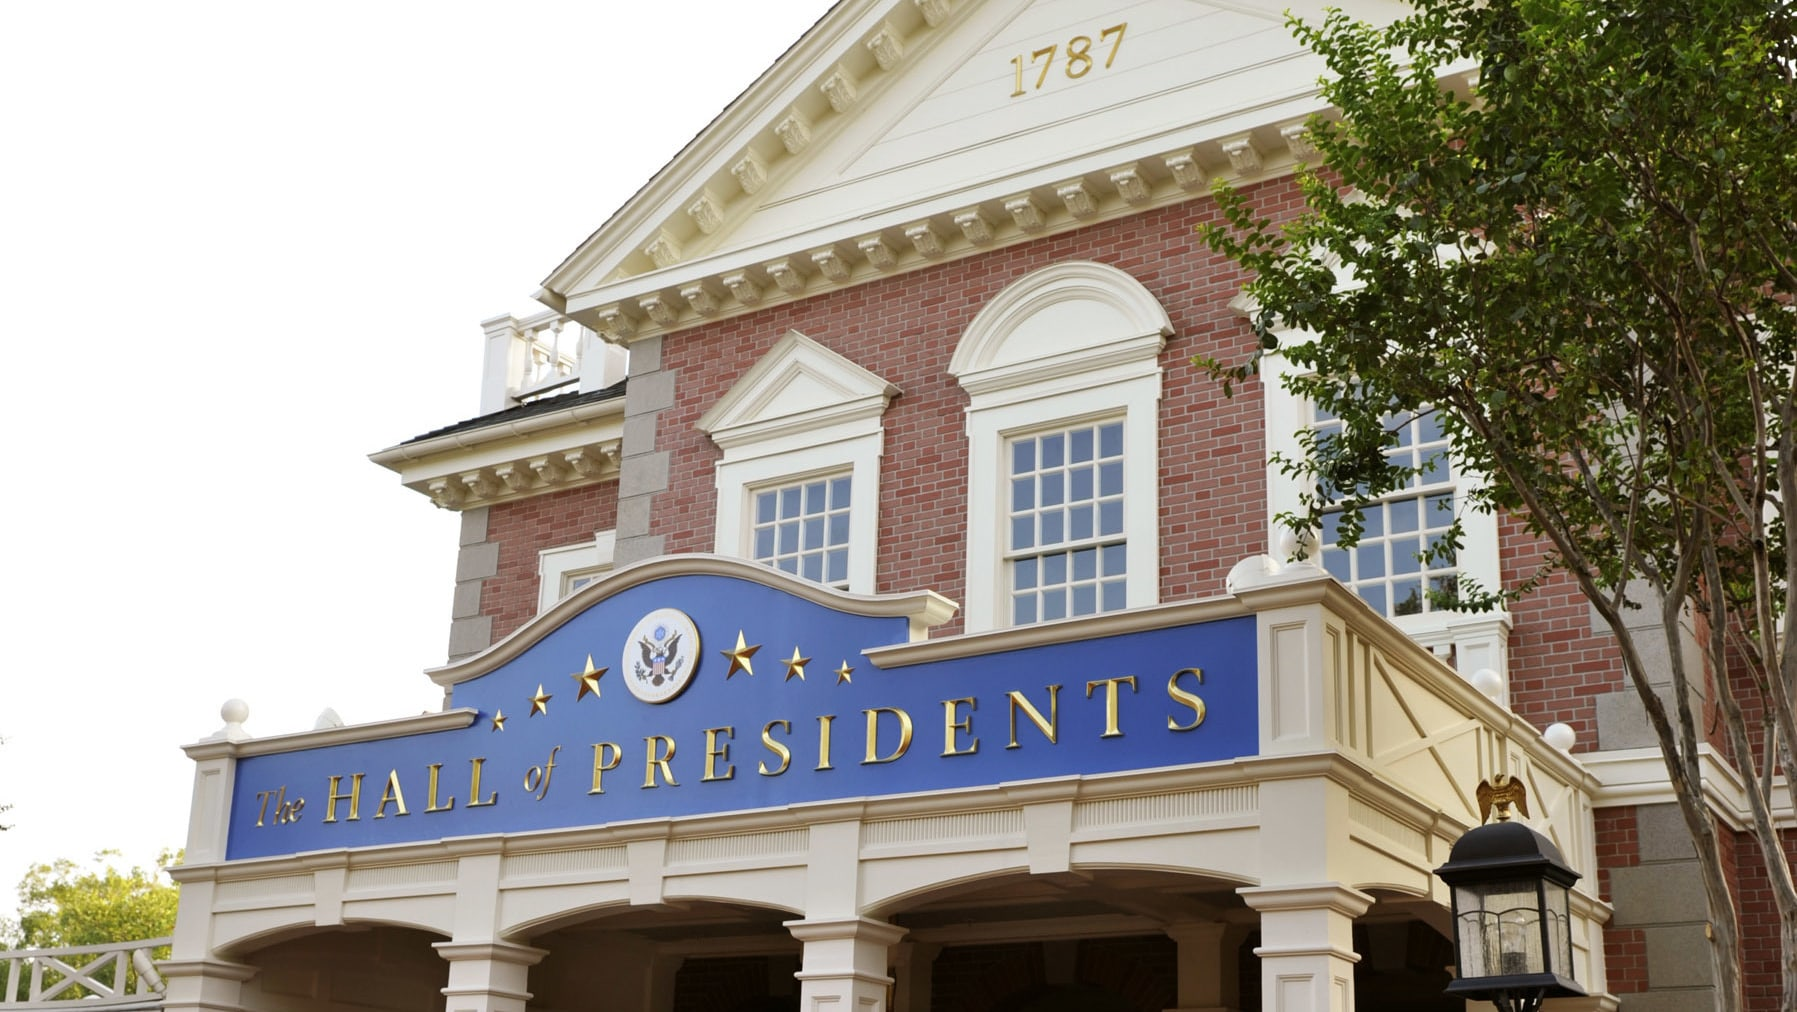 Image of The Hall of Presidents building exterior.